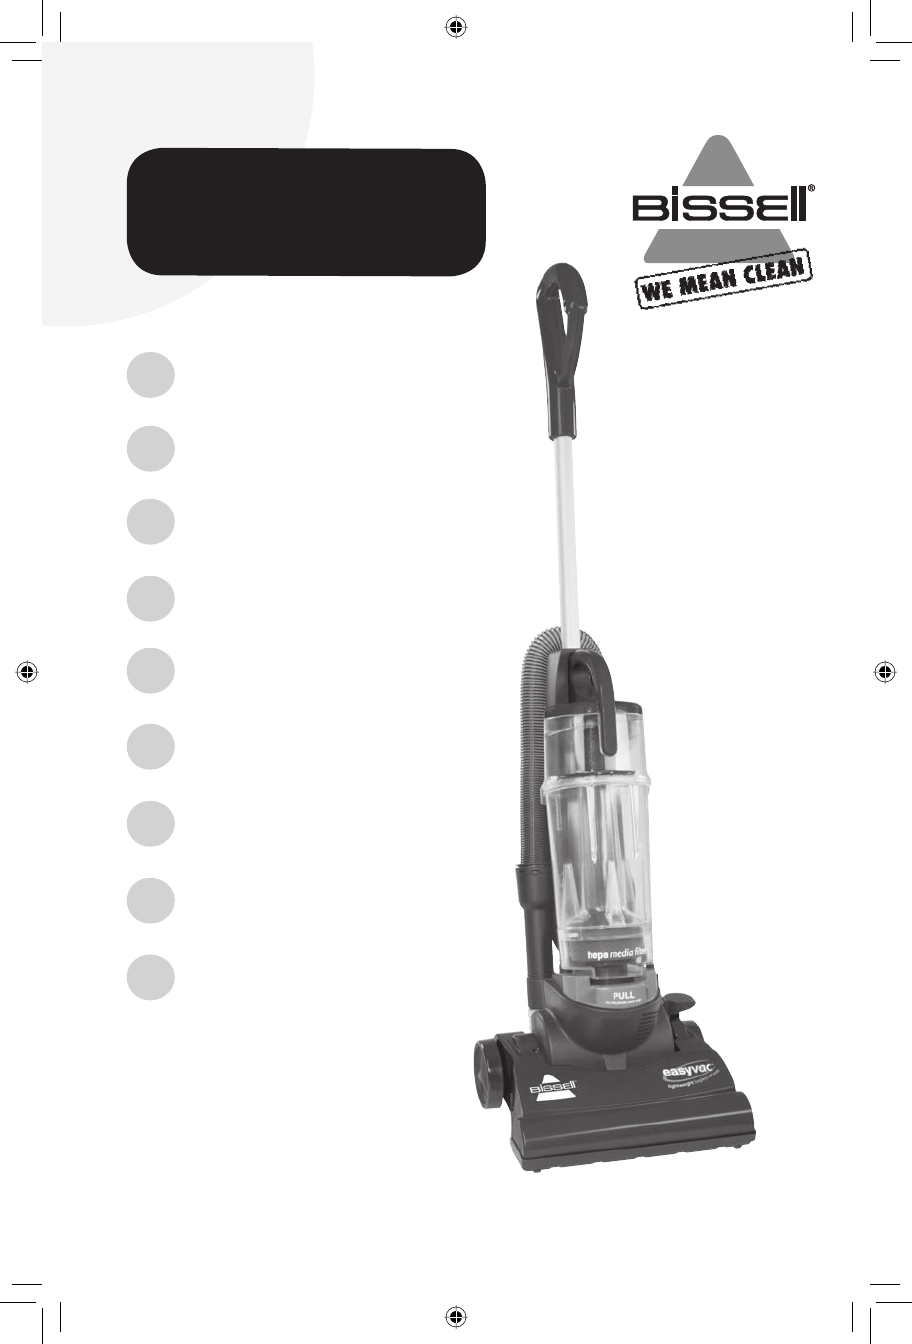 bissell vacuum cleaner 3130 user guide manualsonline com rh tv manualsonline com Bissell Vacuum Bissell Easy Vac Bagless Upright Vacuum